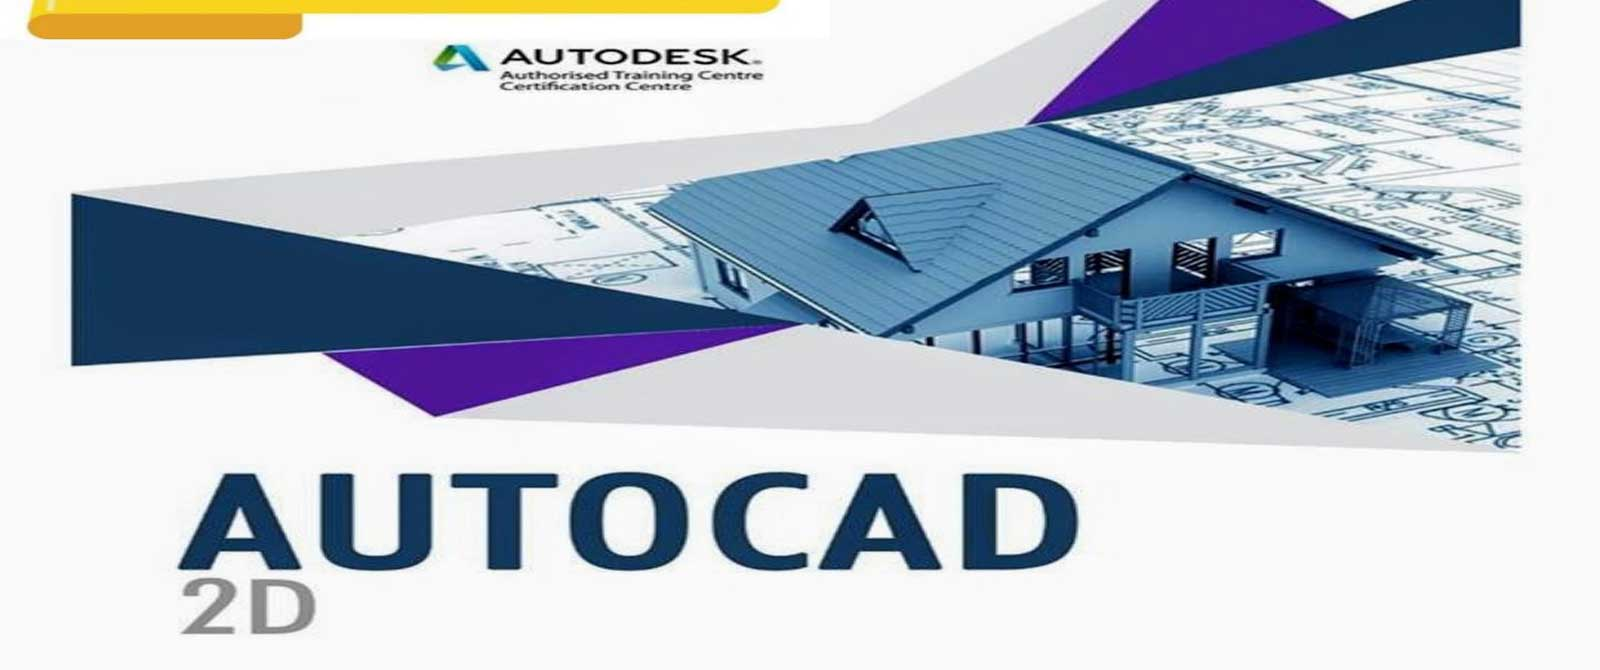 Autodesk® Autocad® 2D Certification Course can change your career...